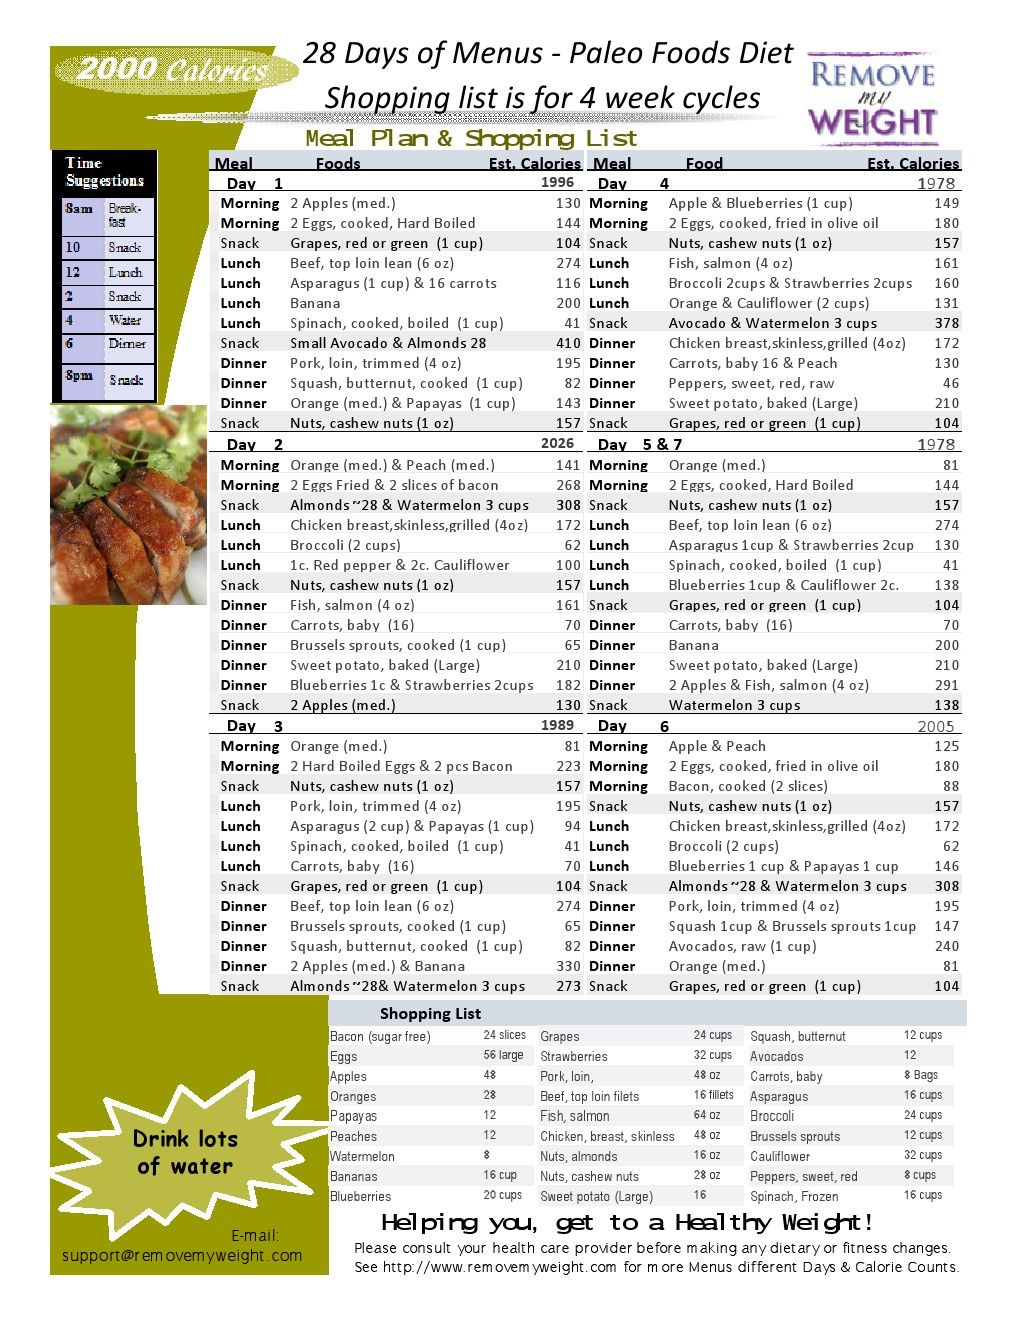 Free 2000 Calories a day 28 Day Paleo Diet with Shoppong List